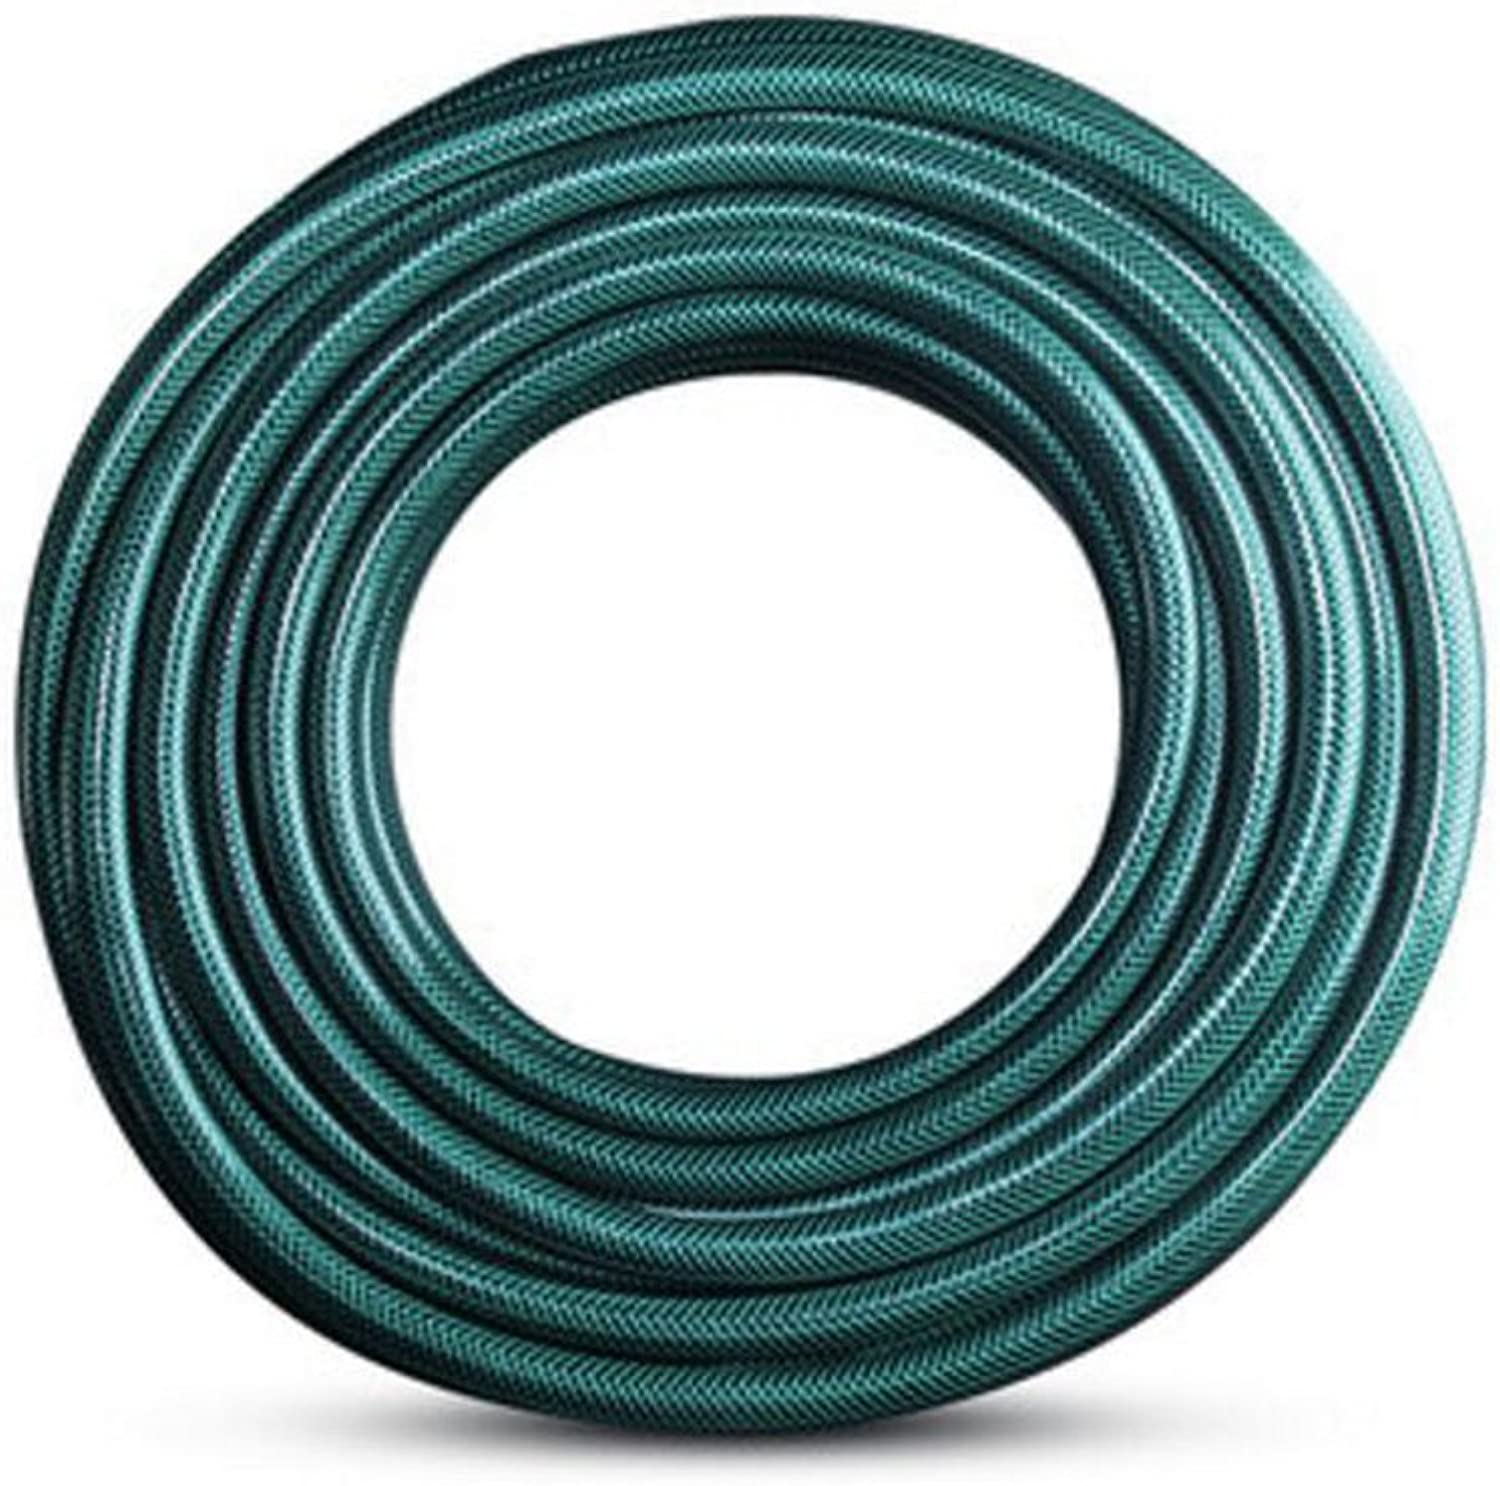 Hose Liuyu·home life G1   2 Home Watering Water Pipes Plastic Explosion Predection Wearable 15m